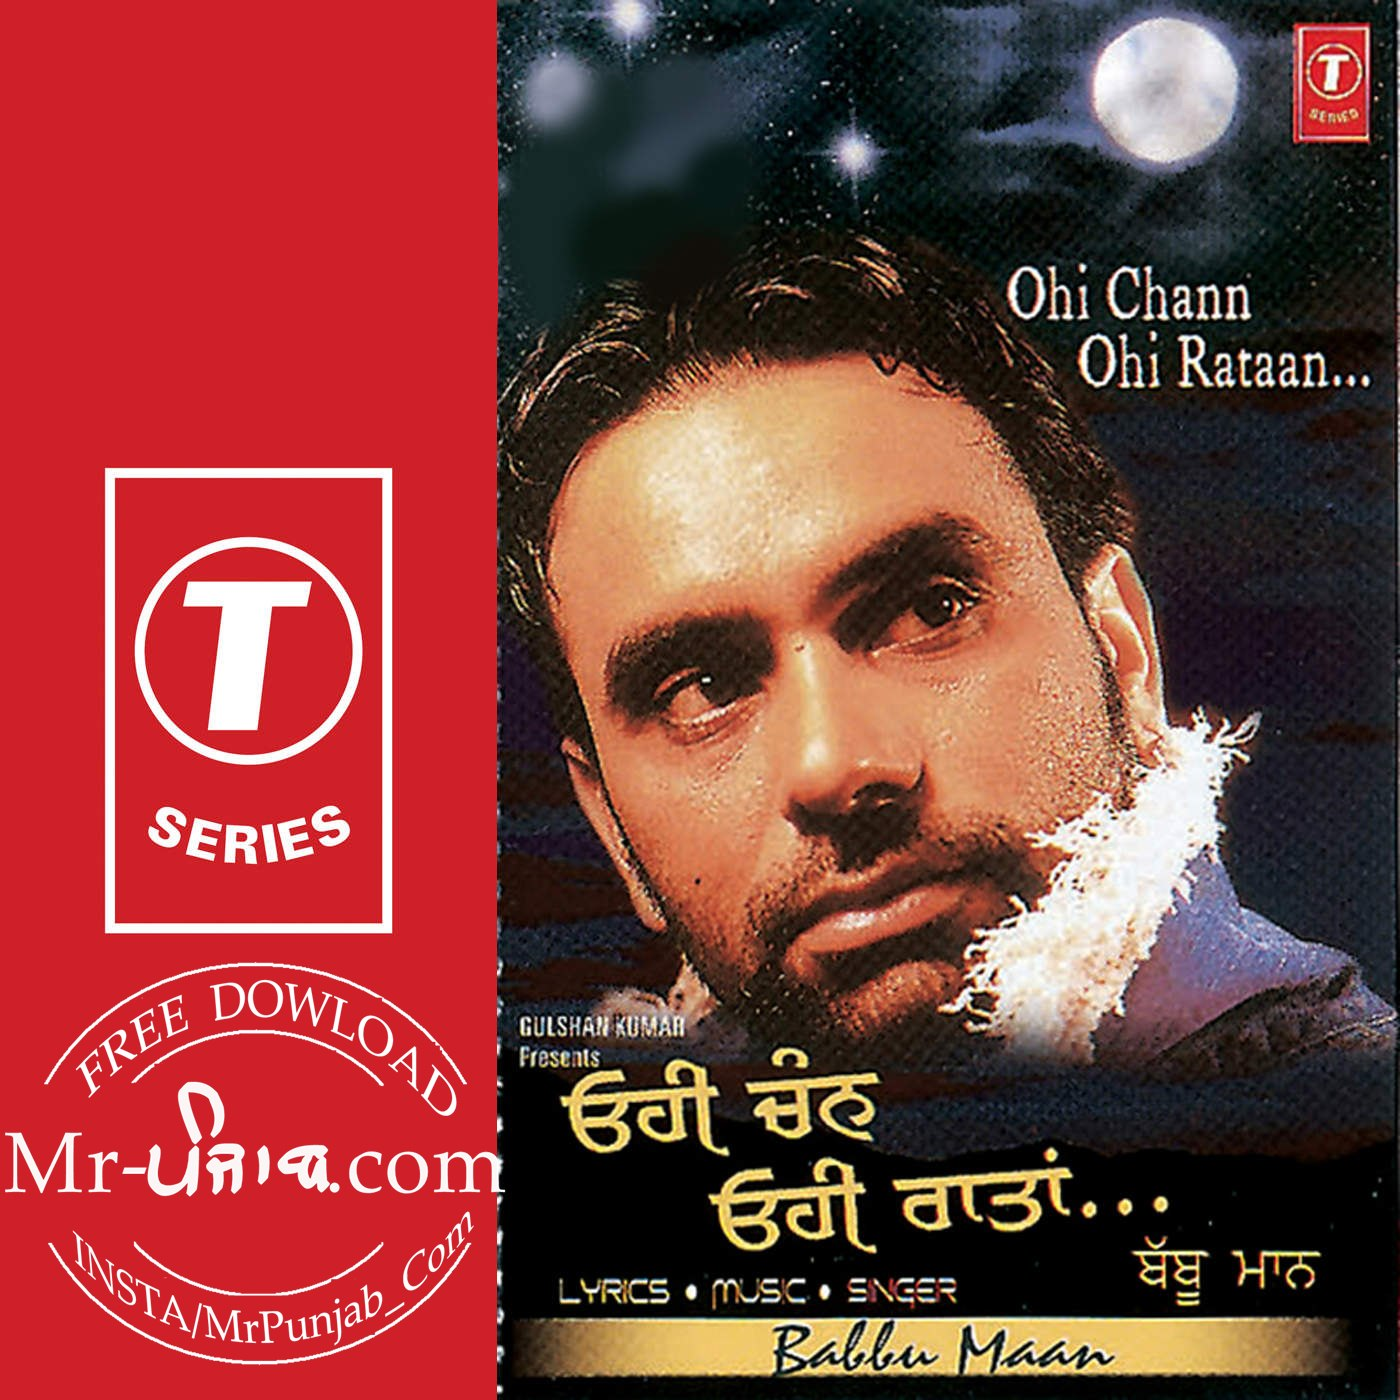 free download Ohi Chann Ohi Rataan Babbu Maan full mp3 songs